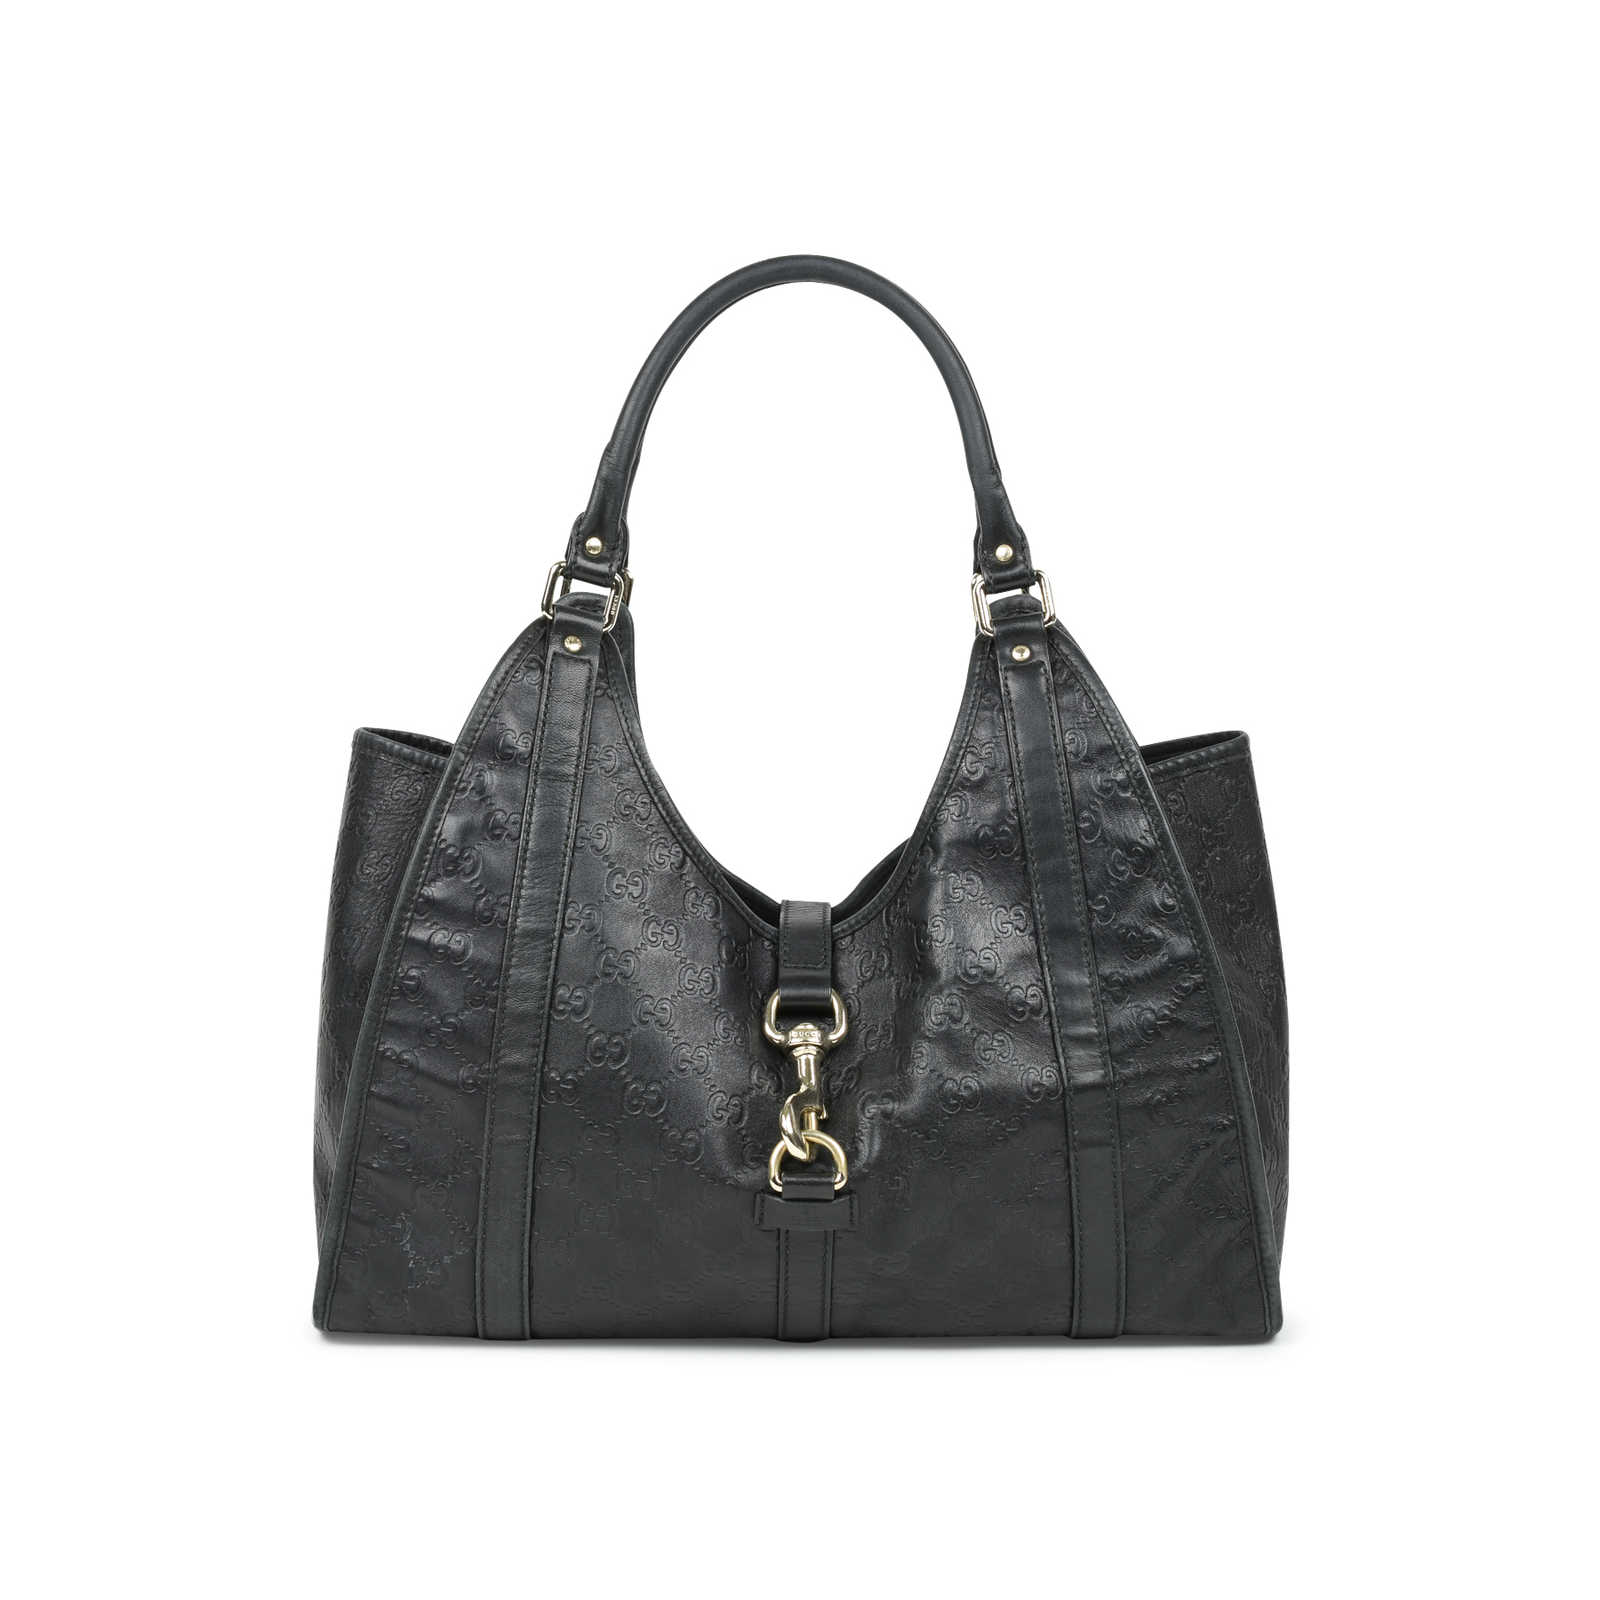 59dbcdcaa04 Tap to expand · Authentic Second Hand Gucci Guccissima Joy Medium Shoulder  Bag (PSS-516-00002) ...